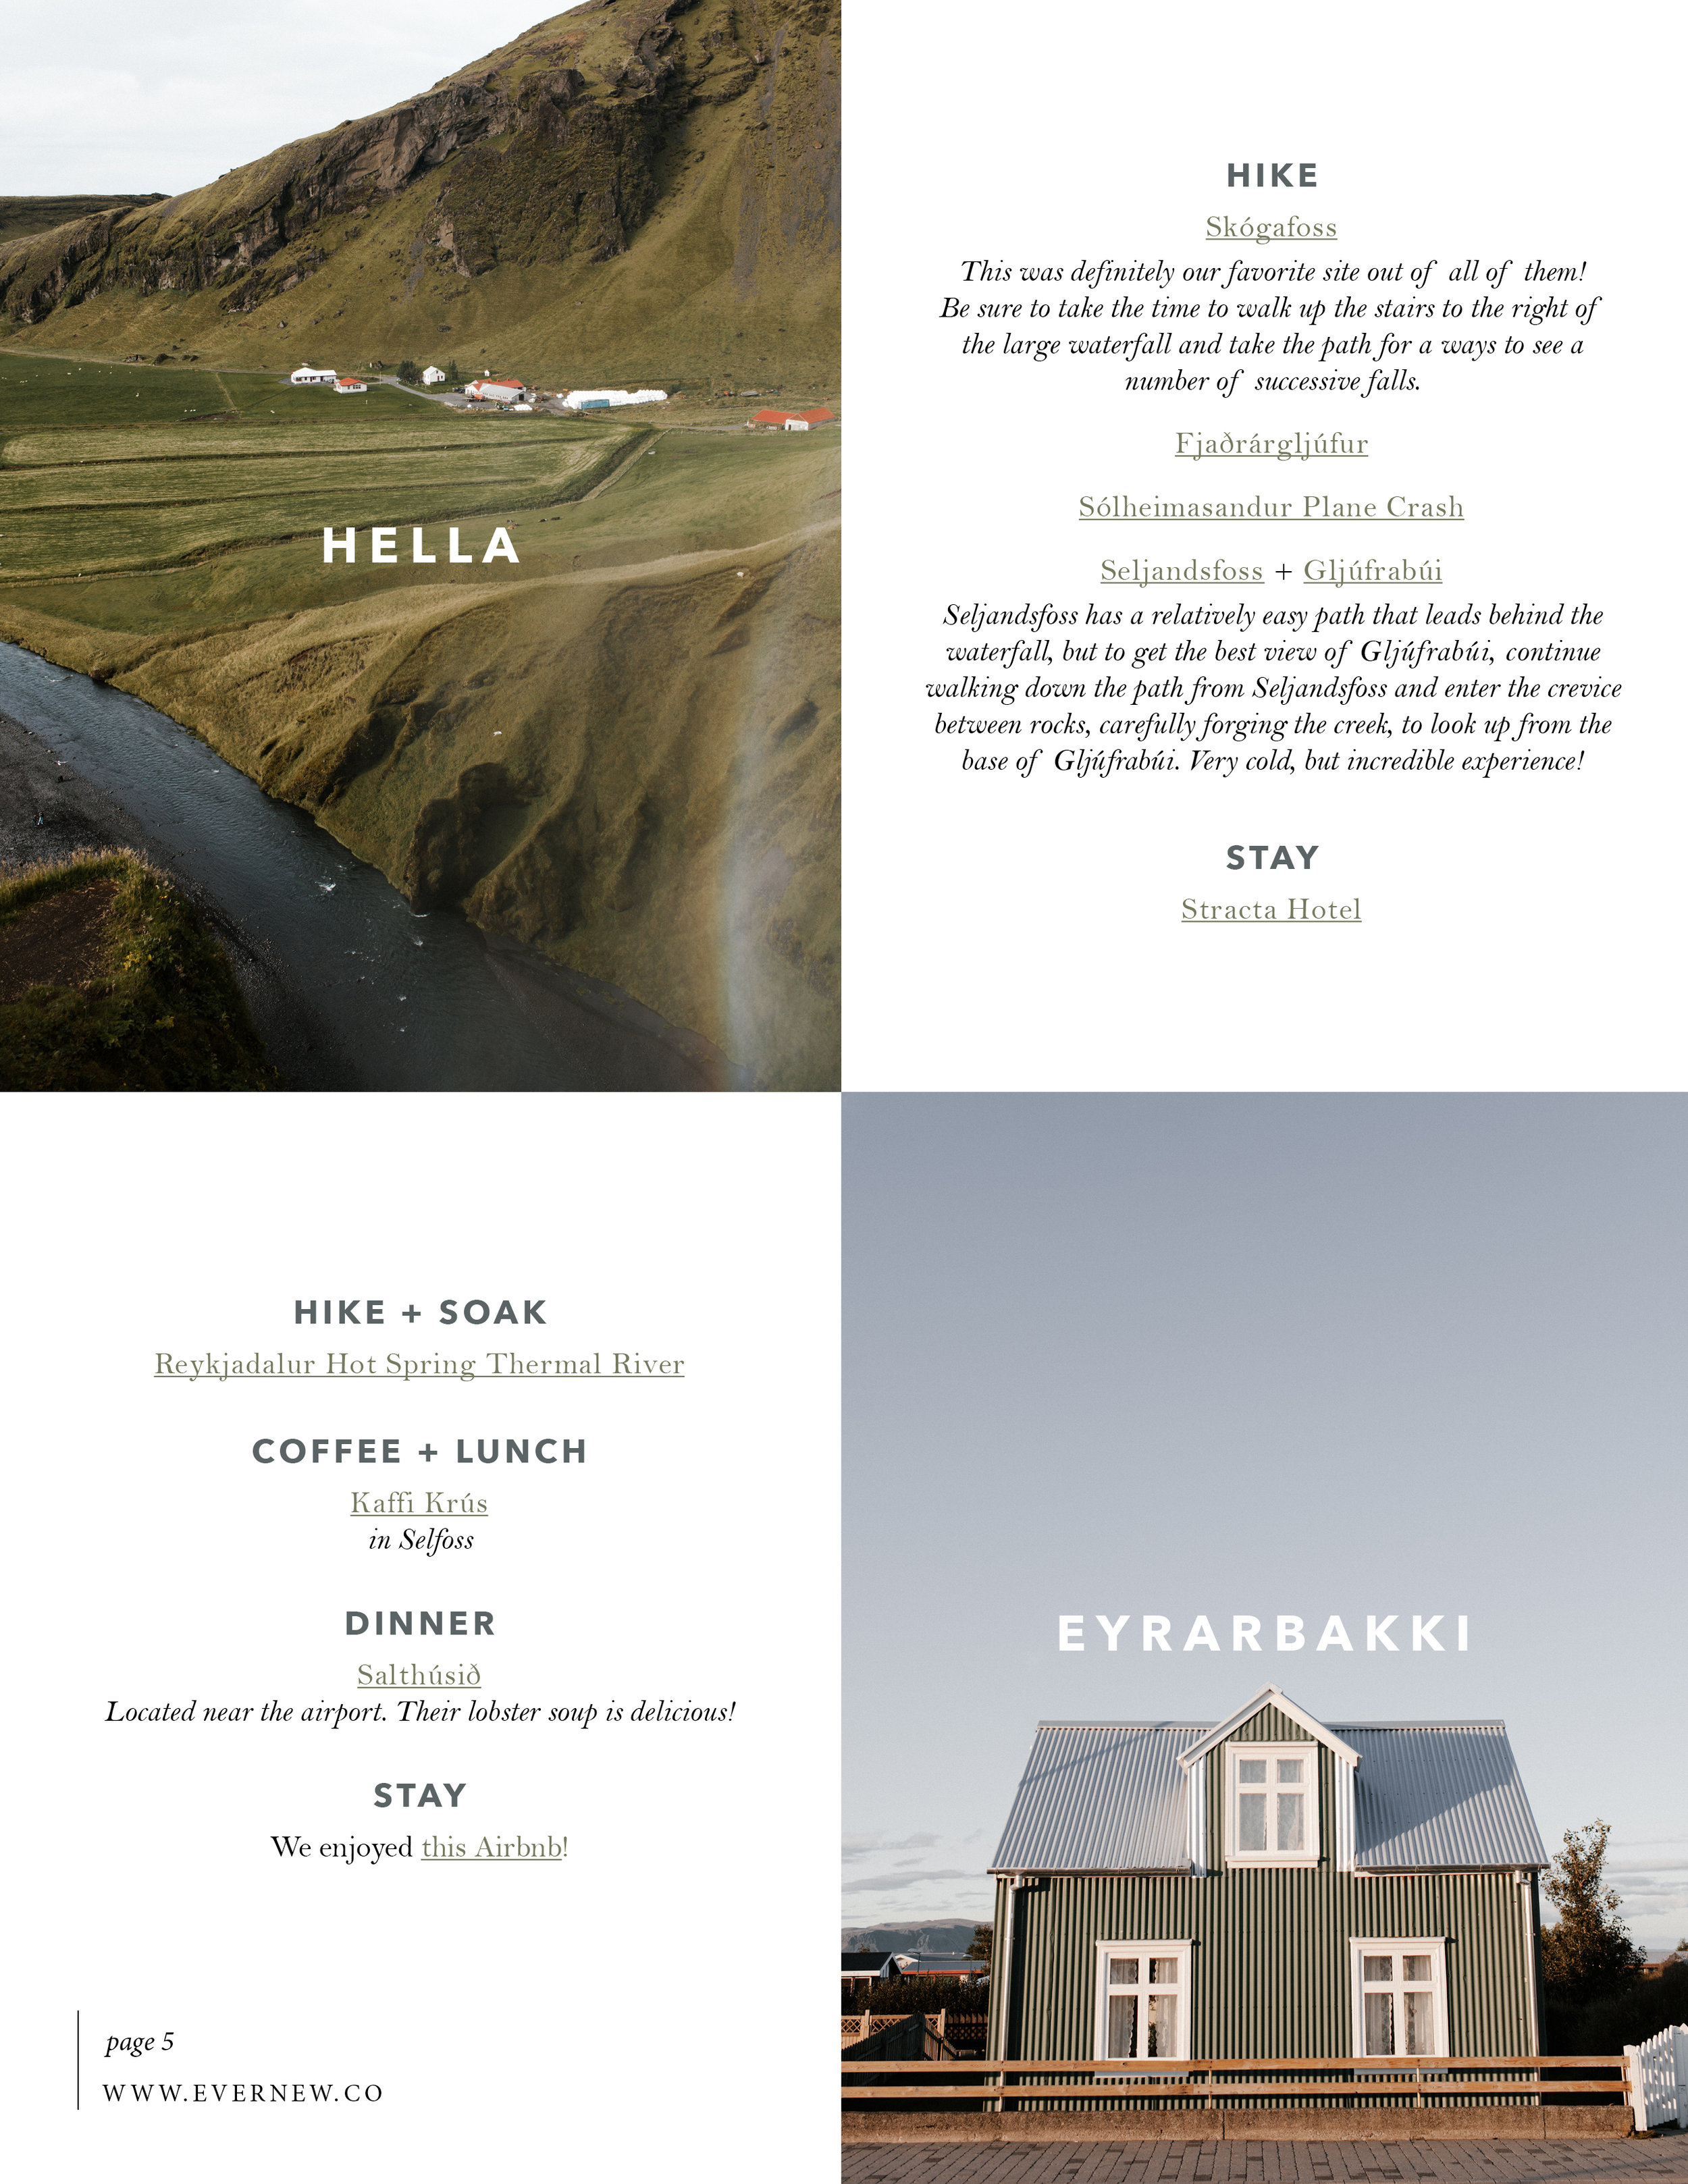 Evernew - Iceland Guide5.jpg